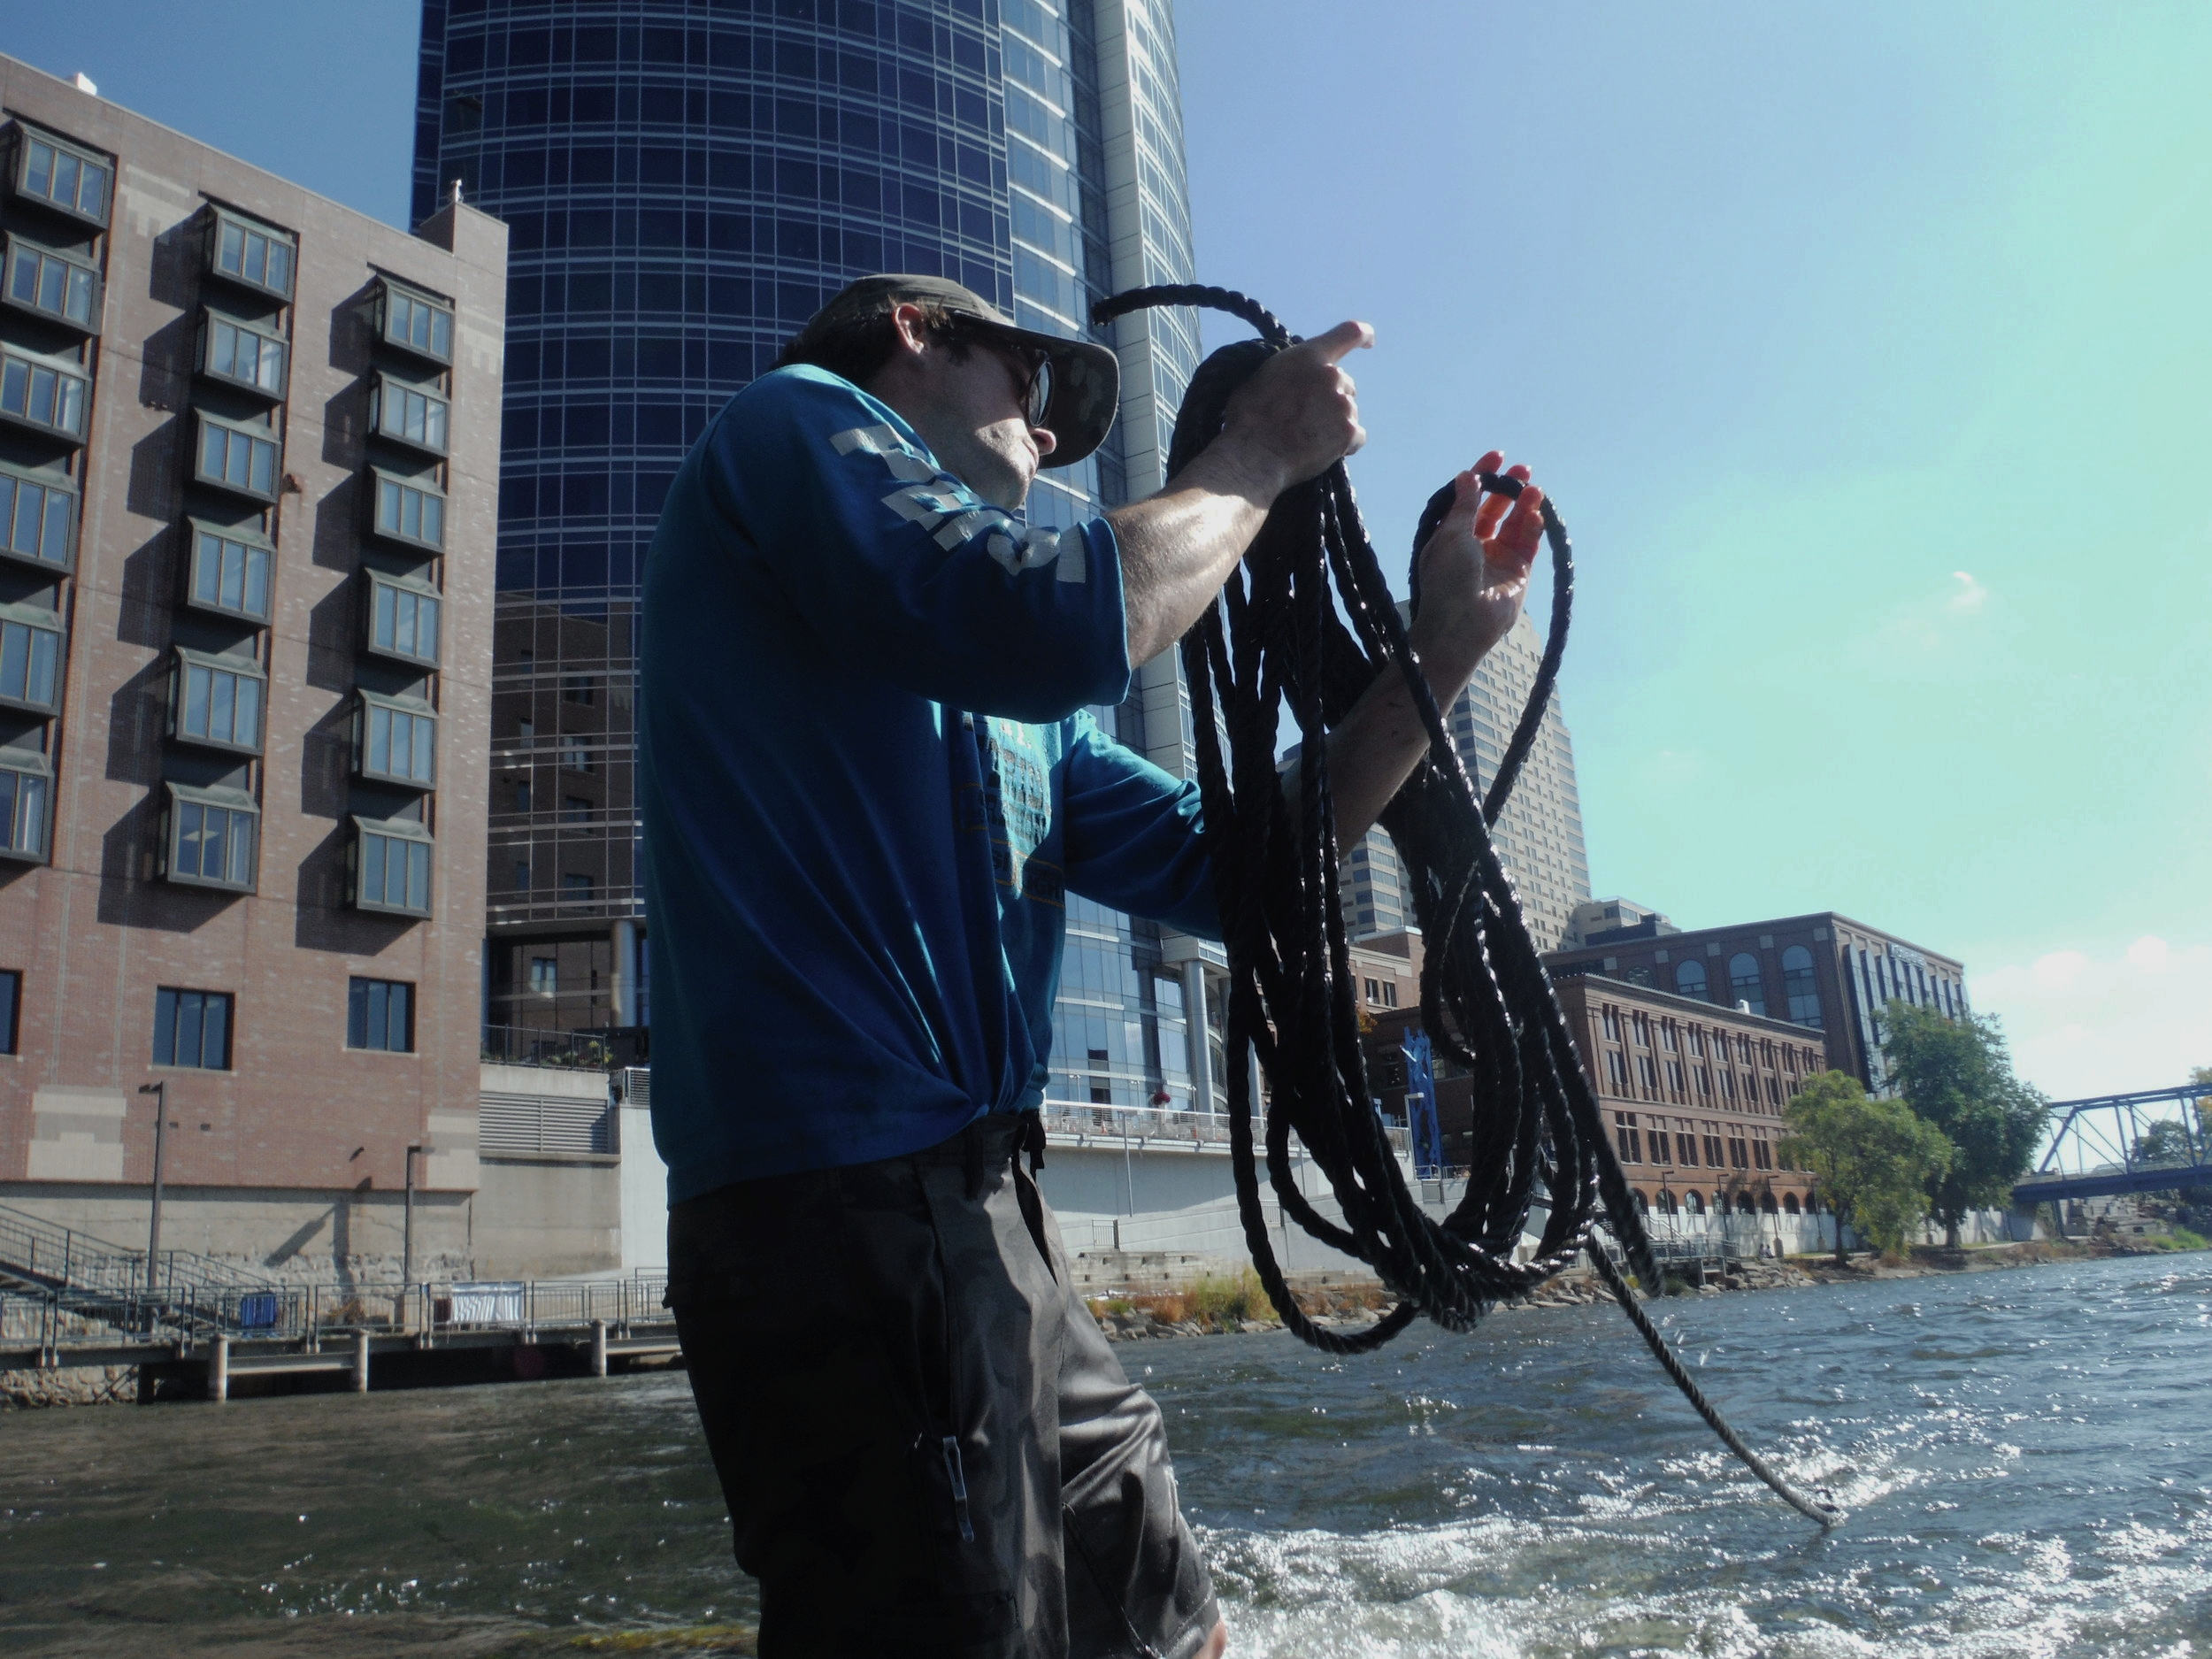 Ryan Spencer Reed, winding up some of the rigging from the installation.